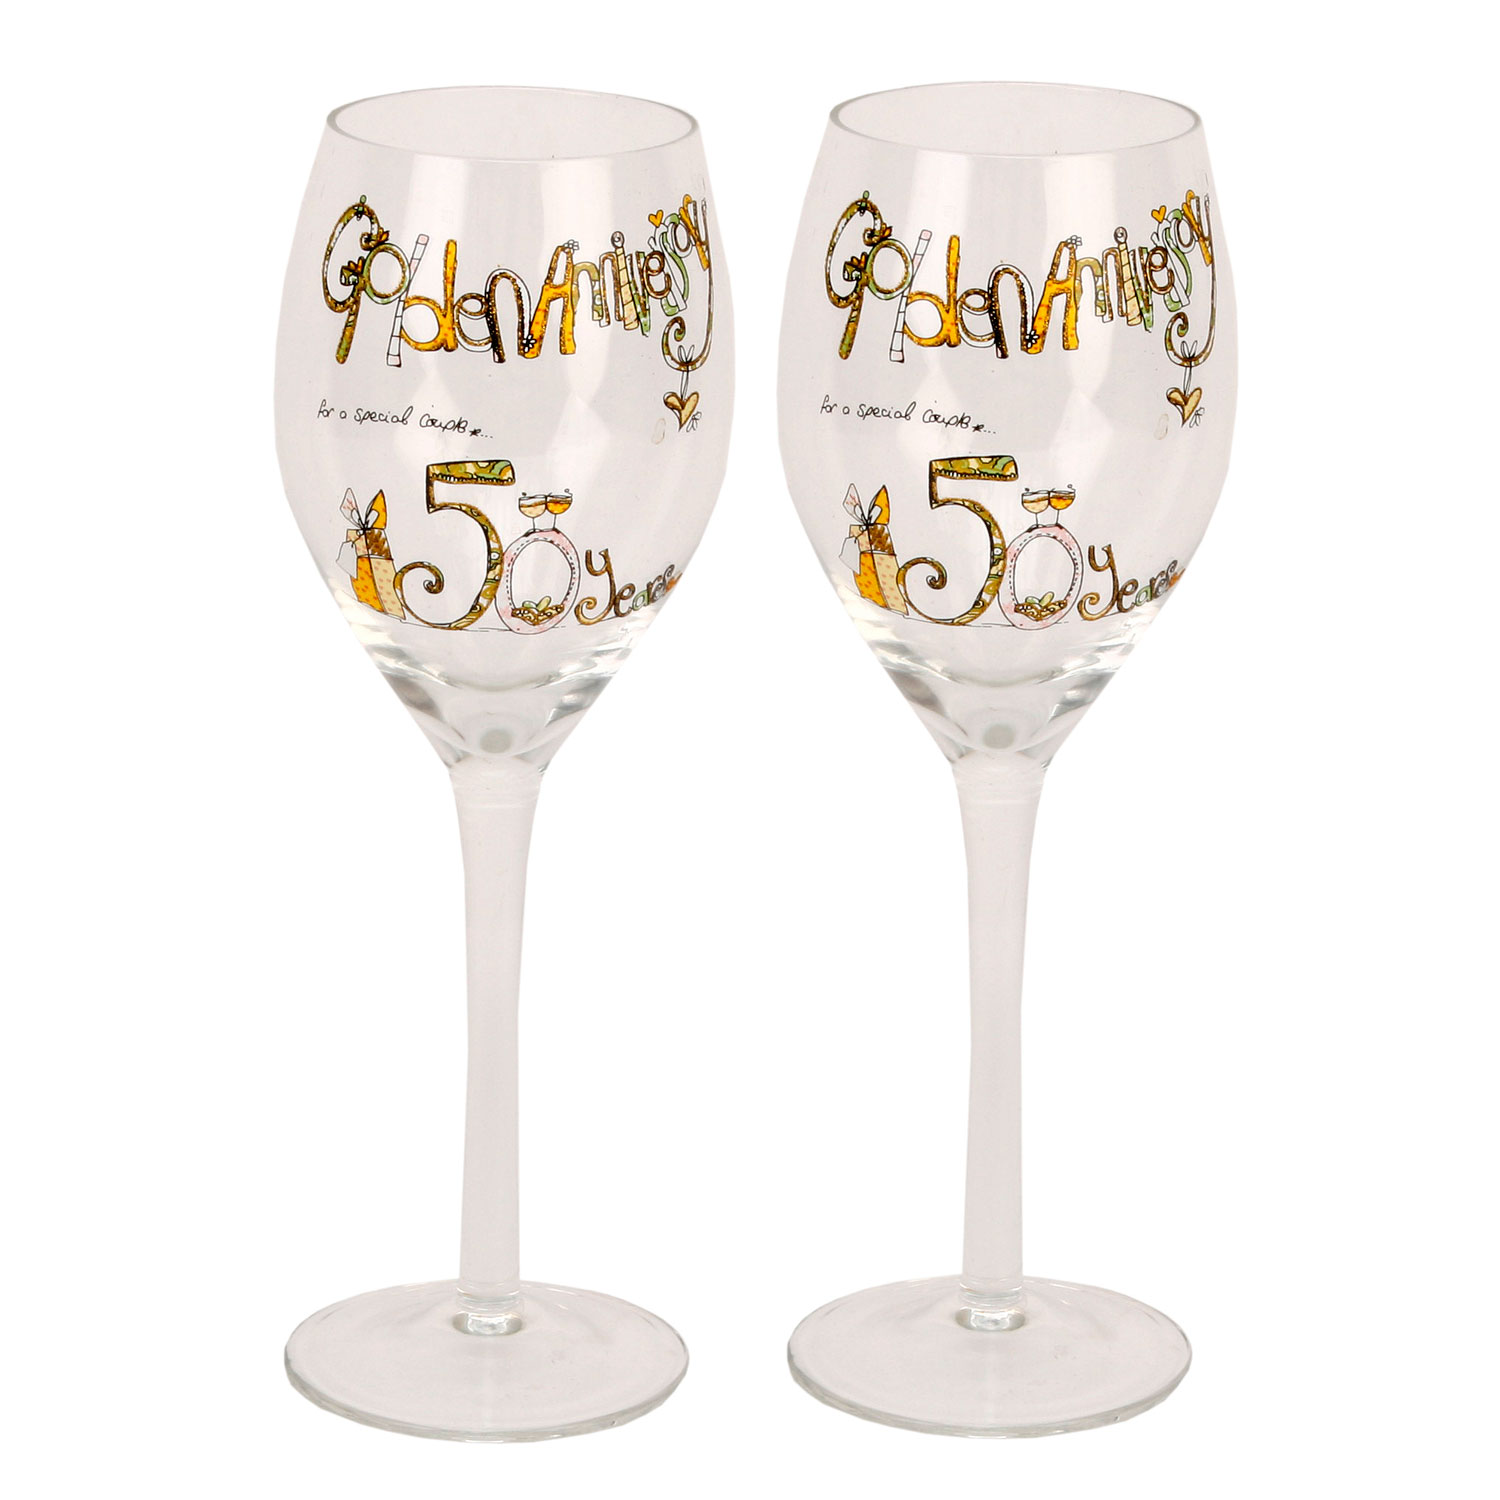 Fancy Wine Glass Tracey Russell Decorative Wine Glasses 50th Gold